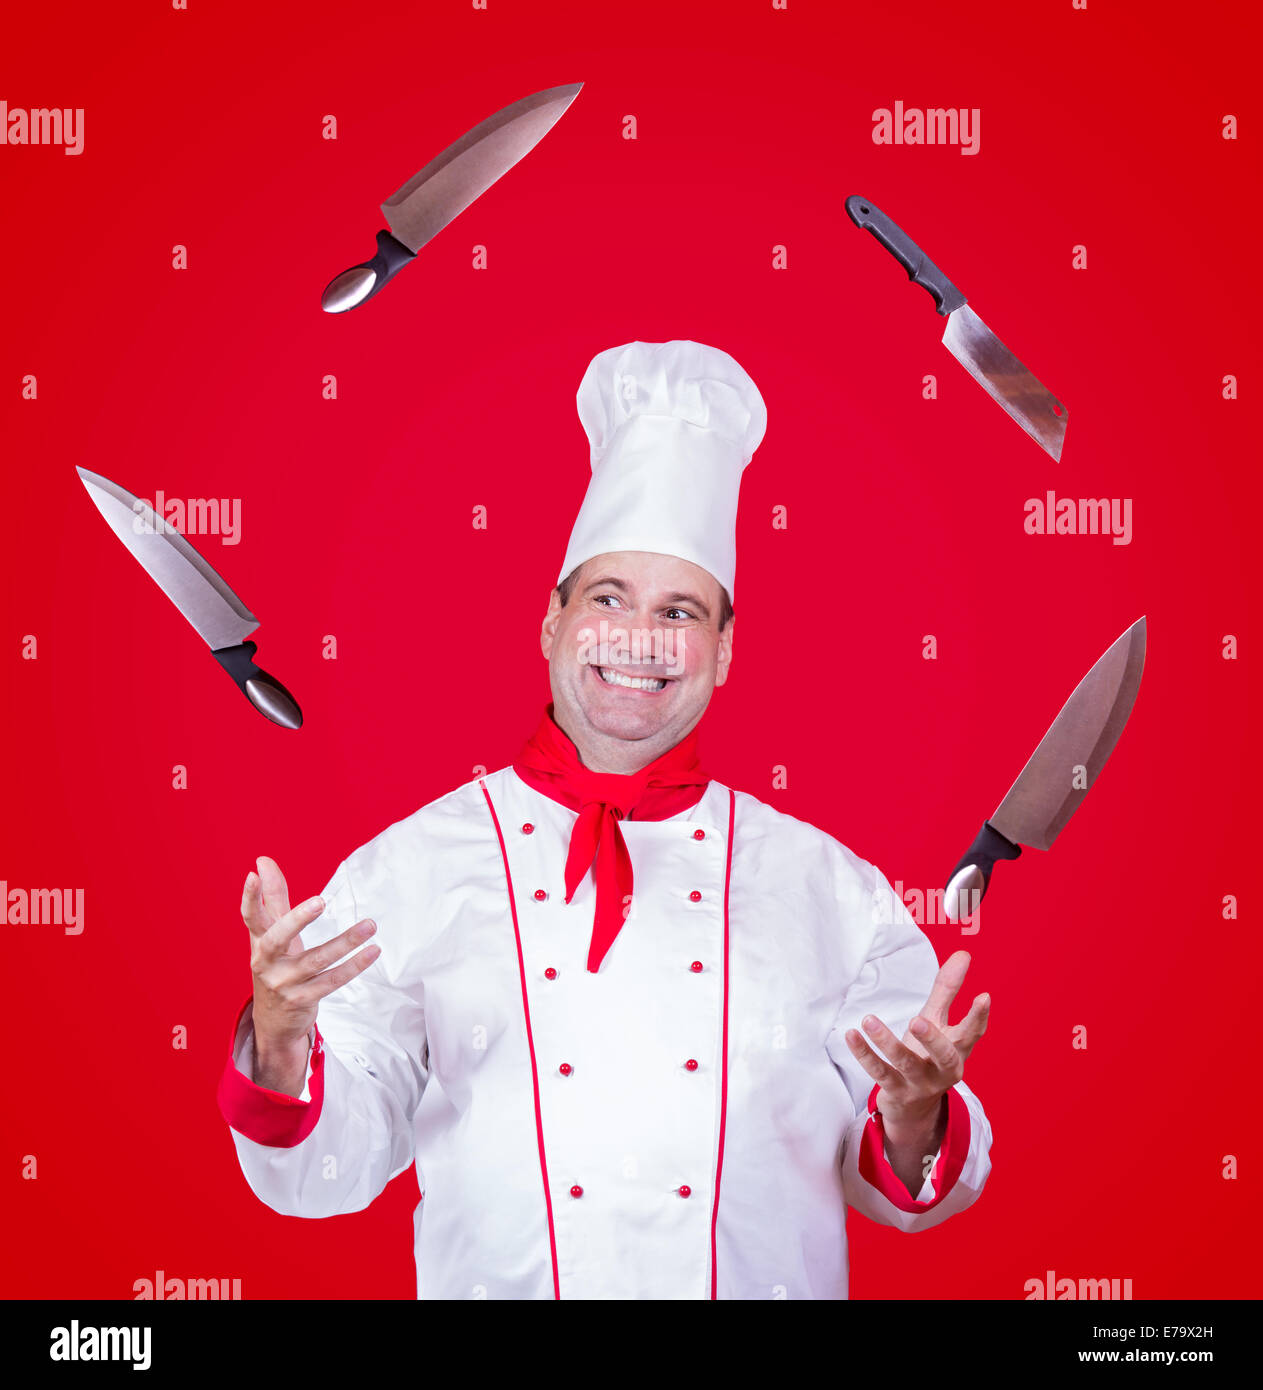 cheerful cook juggle with knife - Stock Image